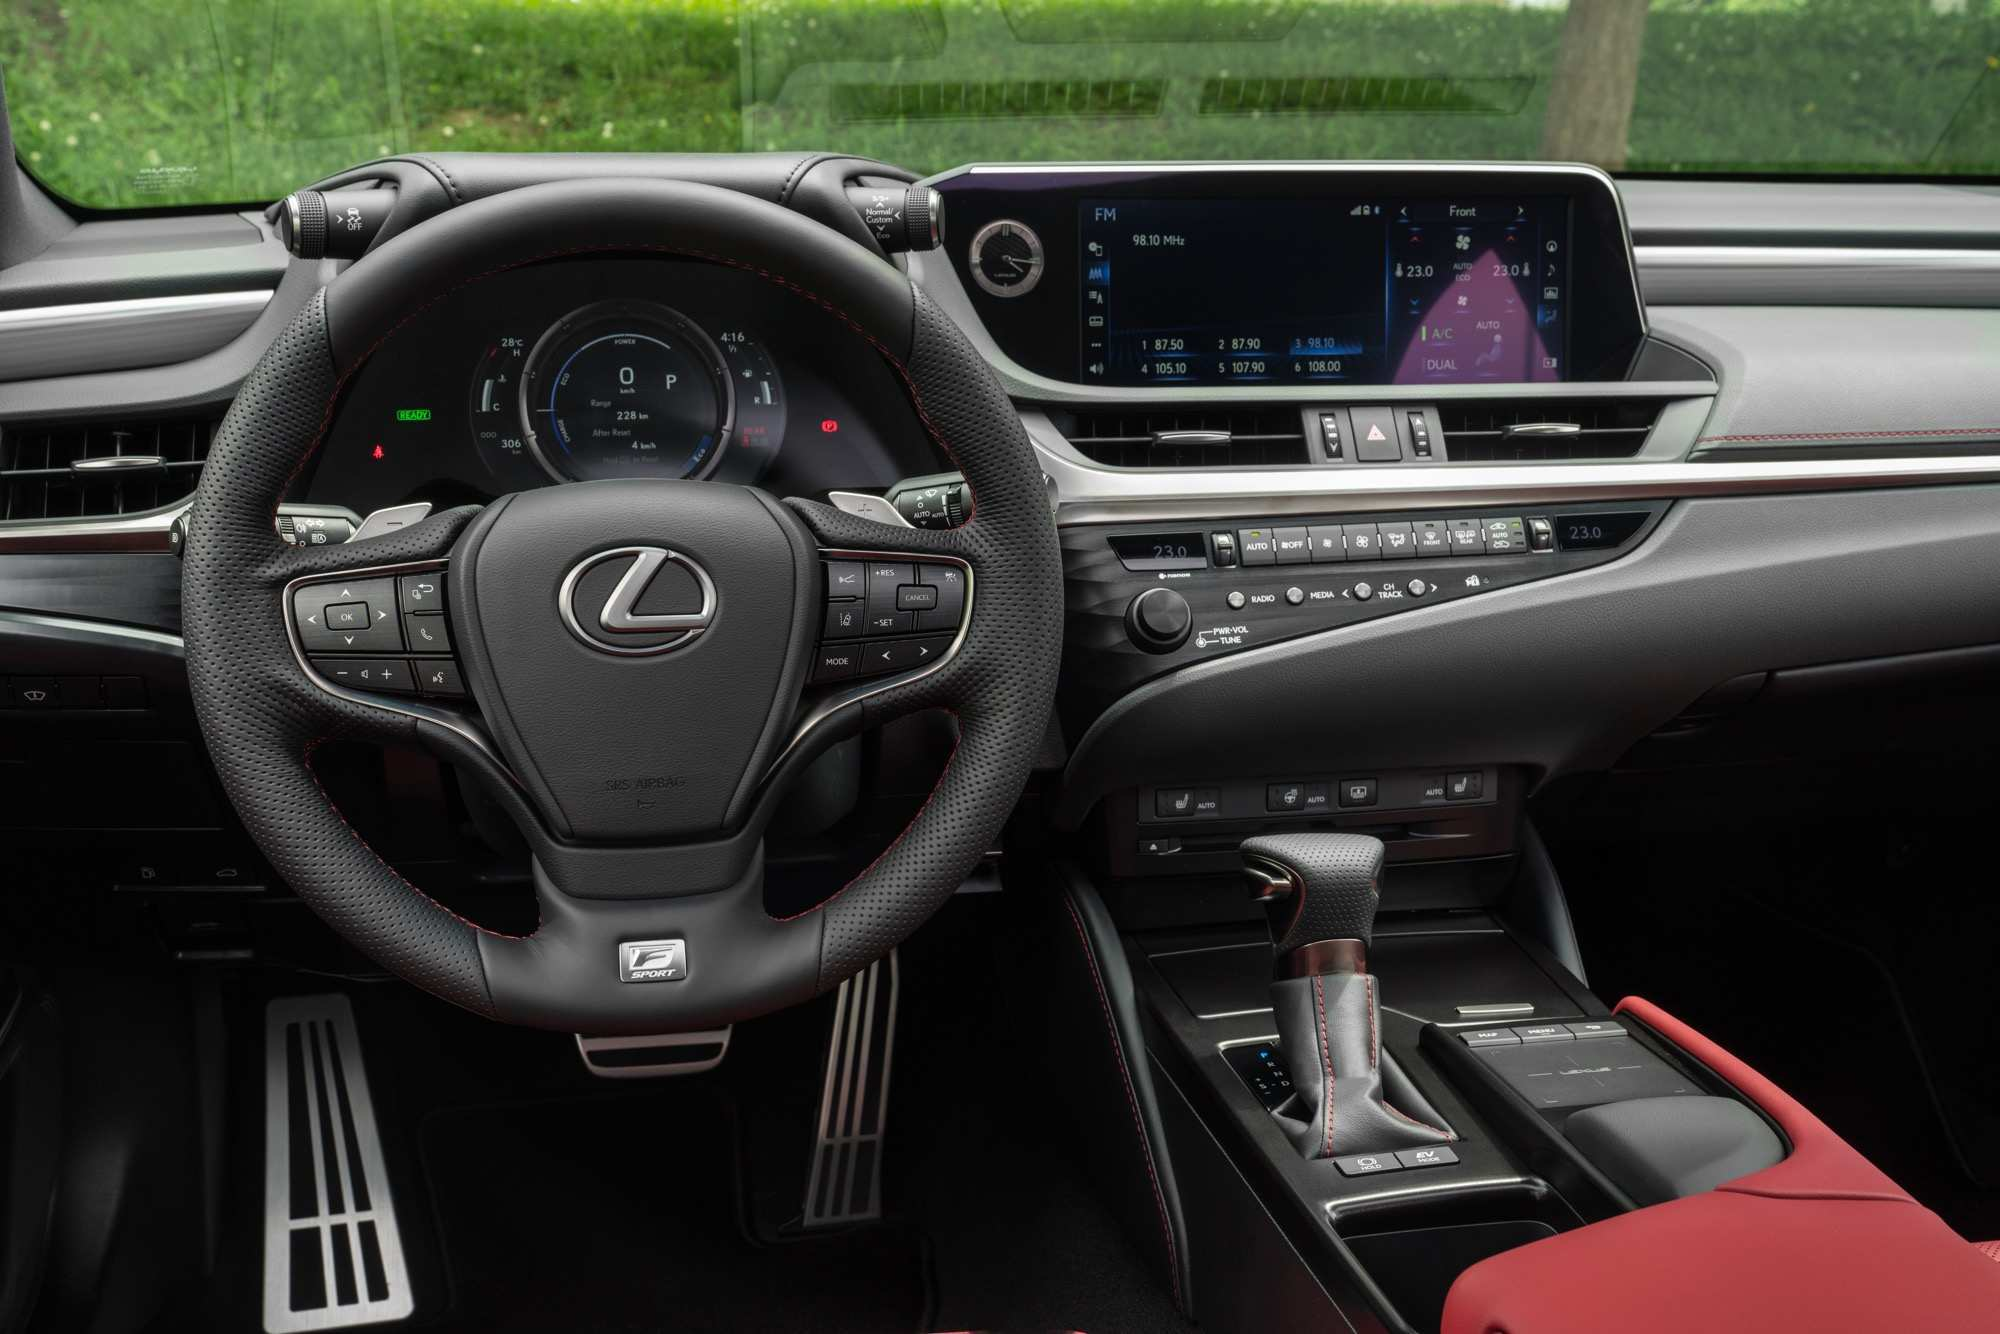 59 Great 2019 Lexus Es Interior Exterior and Interior for 2019 Lexus Es Interior